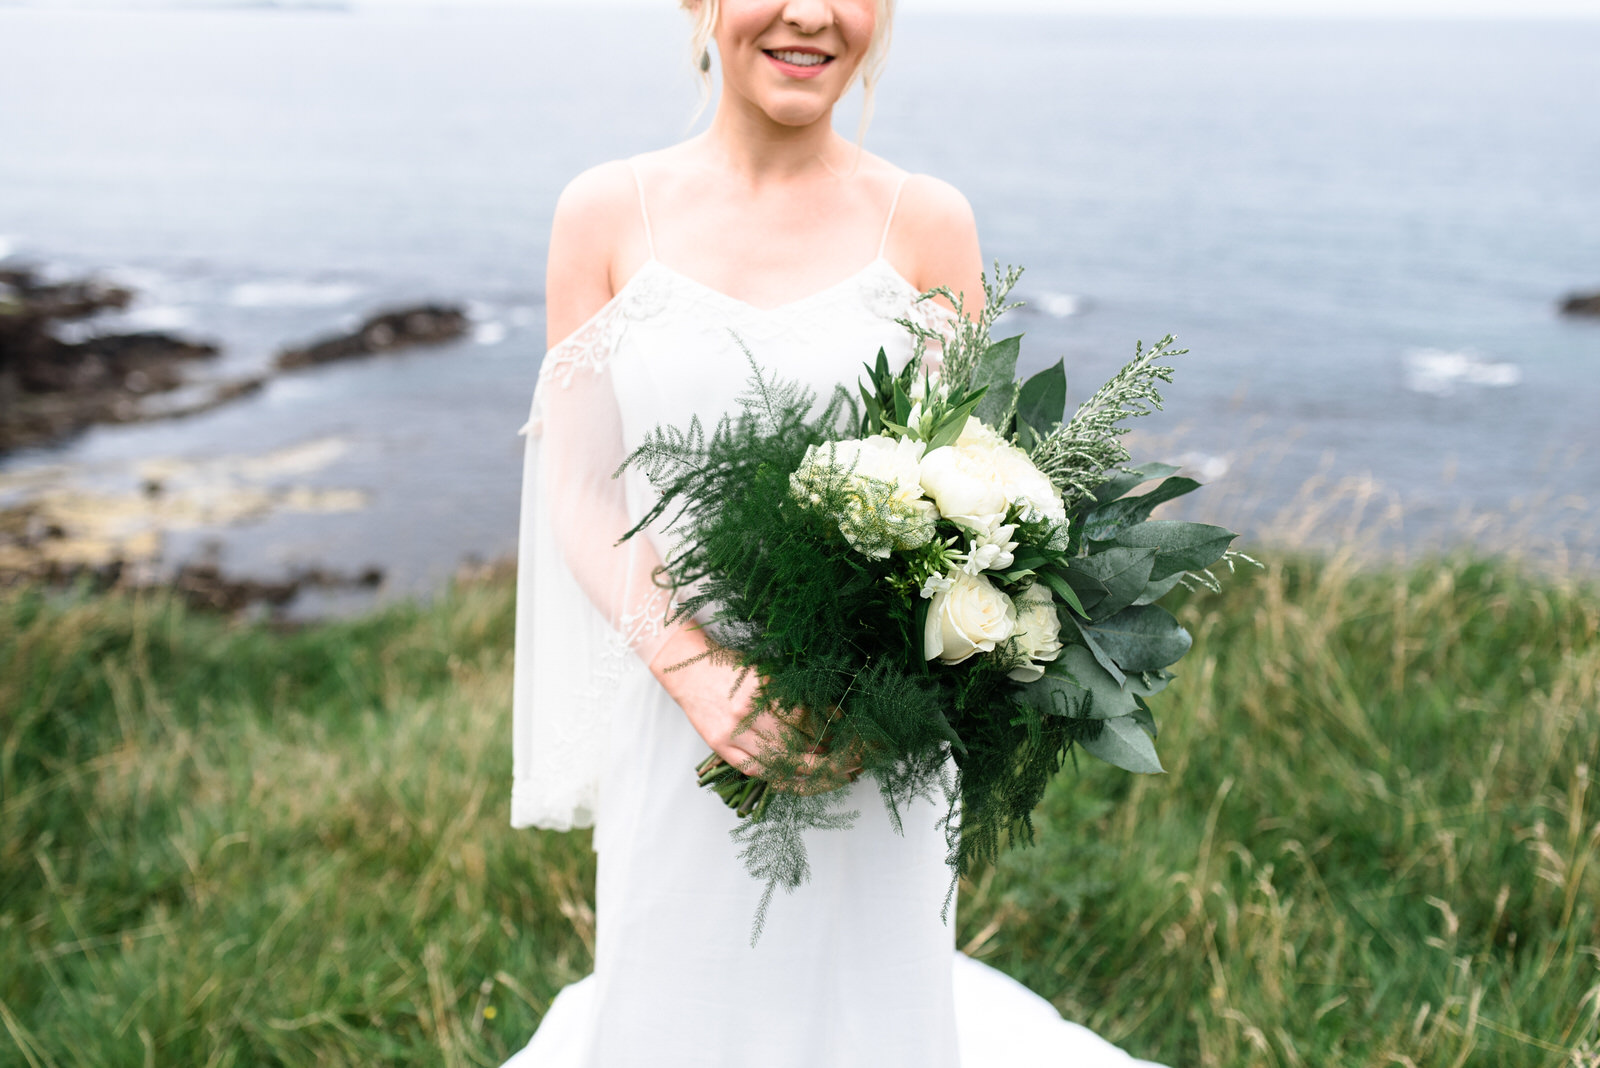 dunluce castle elopement in ireland in sage and white, cliff of northern ireland, green wedding flowers-1.jpg